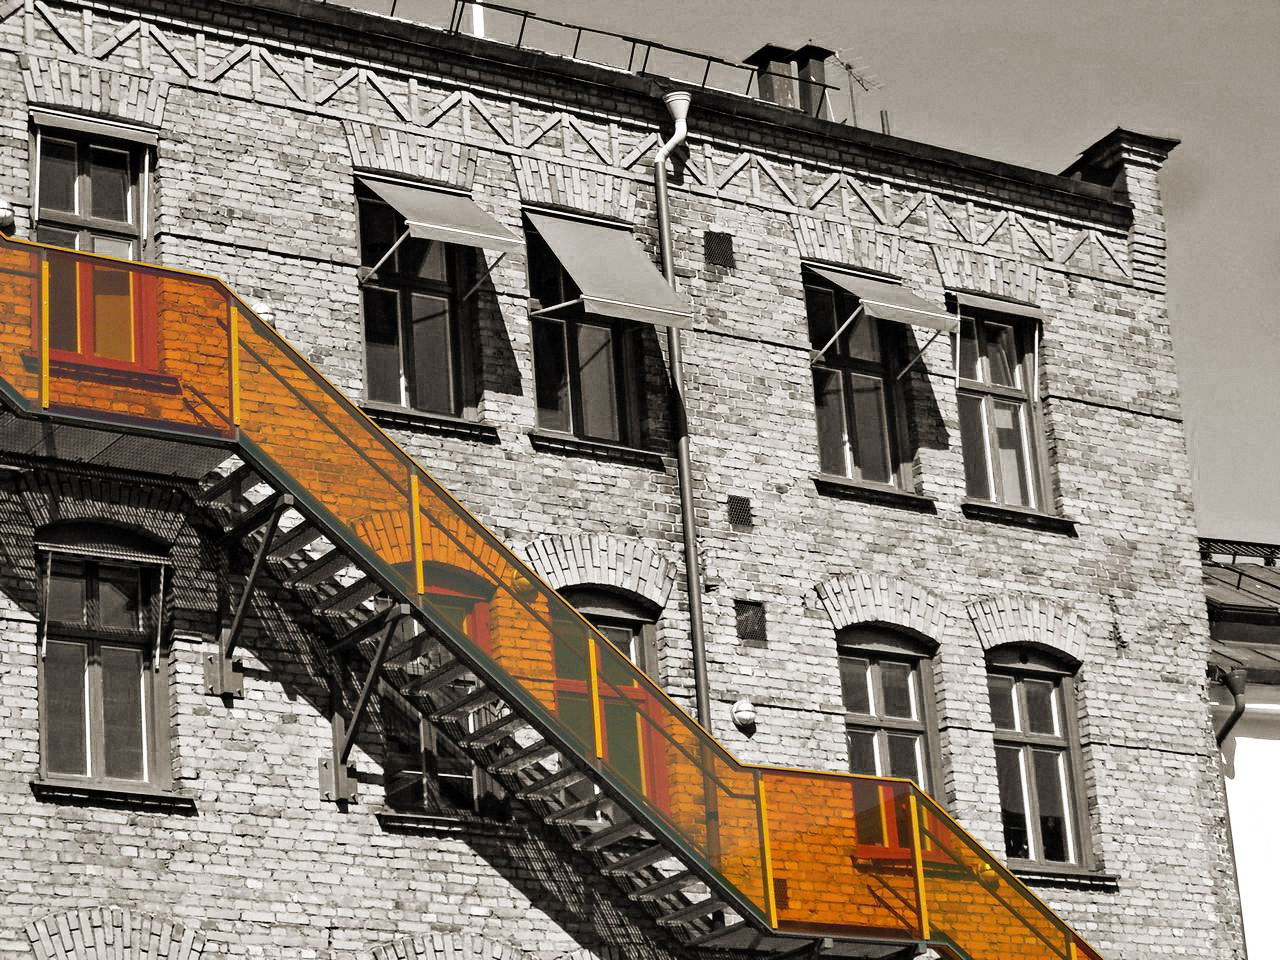 Photo Credit: Stairs by Francesco *******